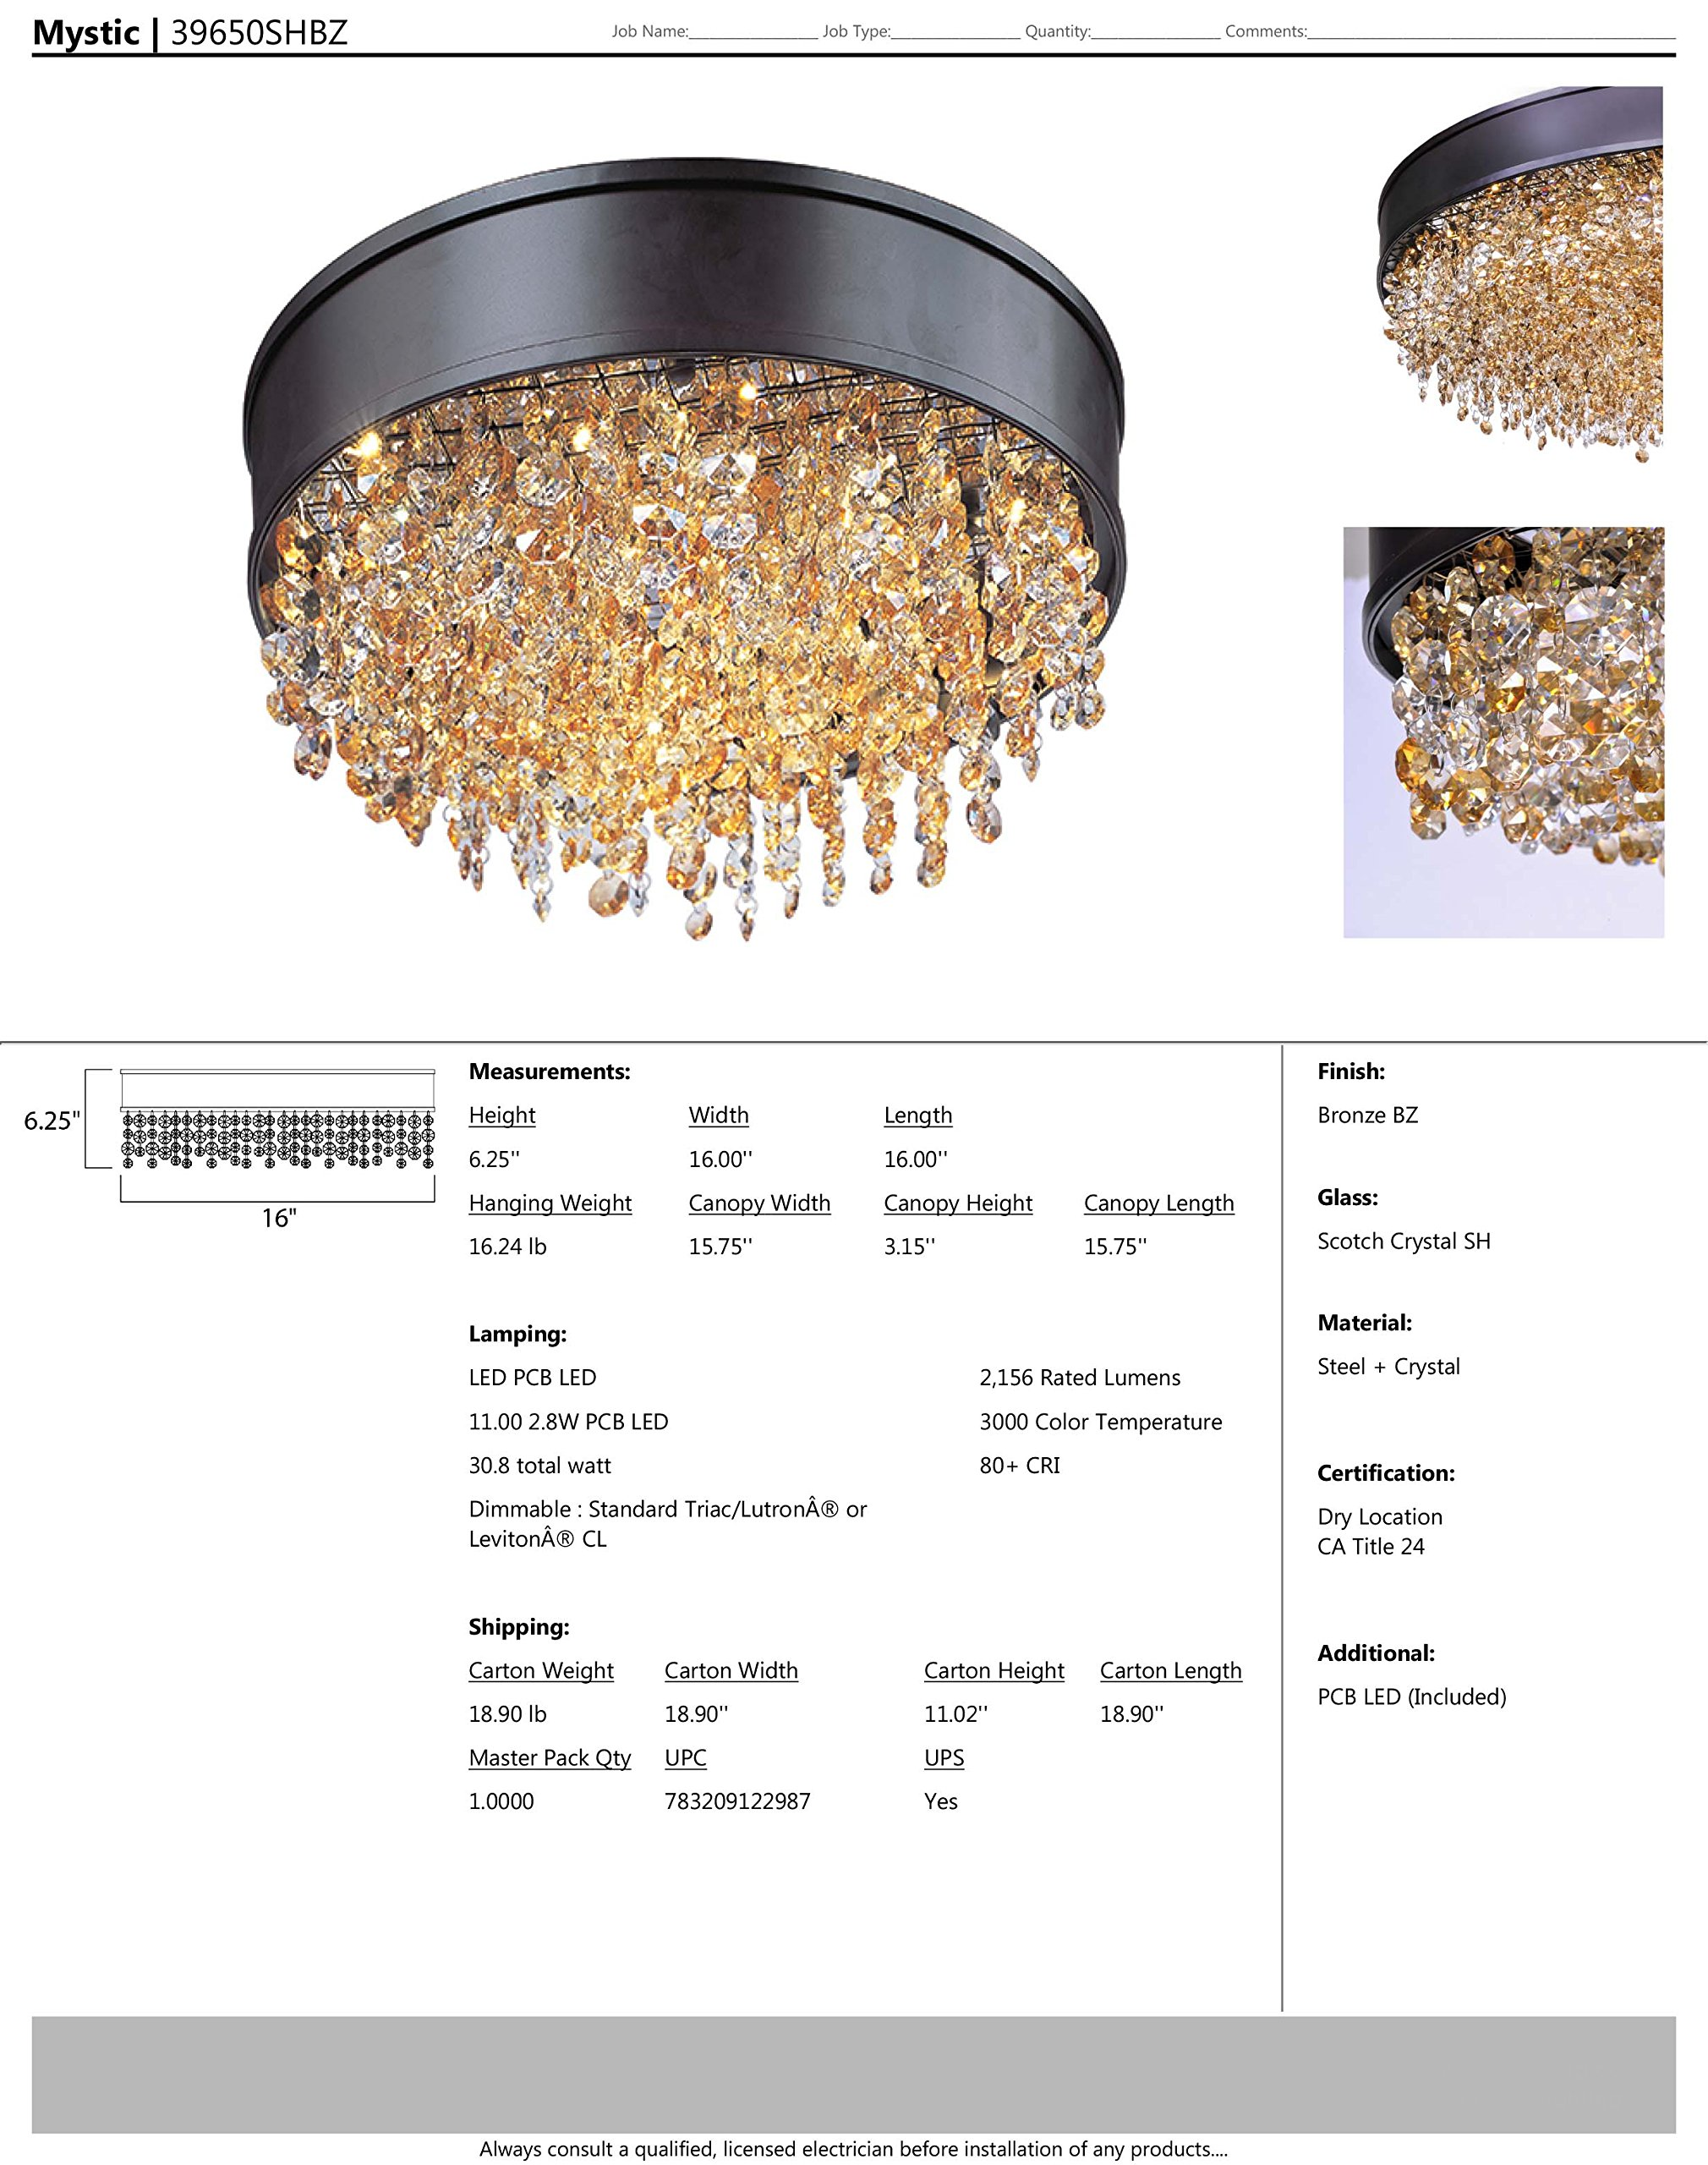 Maxim 39650SHBZ Mystic 11-Light LED Flush Mount, Bronze Finish, Scotch Crystal Glass, PCB LED Bulb , 75W Max., Wet Safety Rating, Shade Material, Rated Lumens by Maxim Lighting (Image #2)